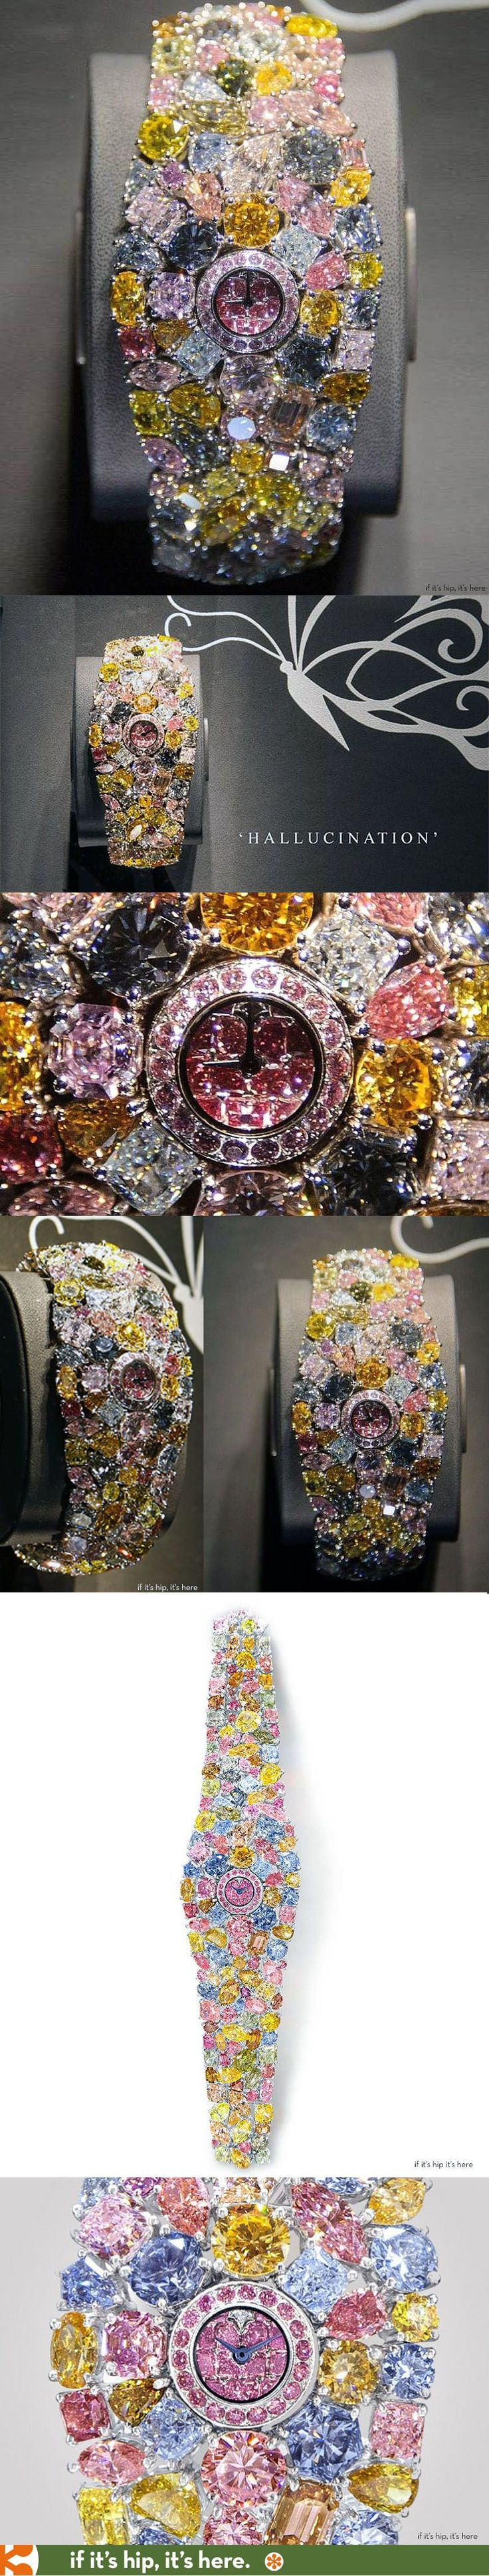 The world's most expensive watch- The Graff Hallucination made of 110 carats of colored diamonds is valued at $55 million. LadyLuxuryDesigns